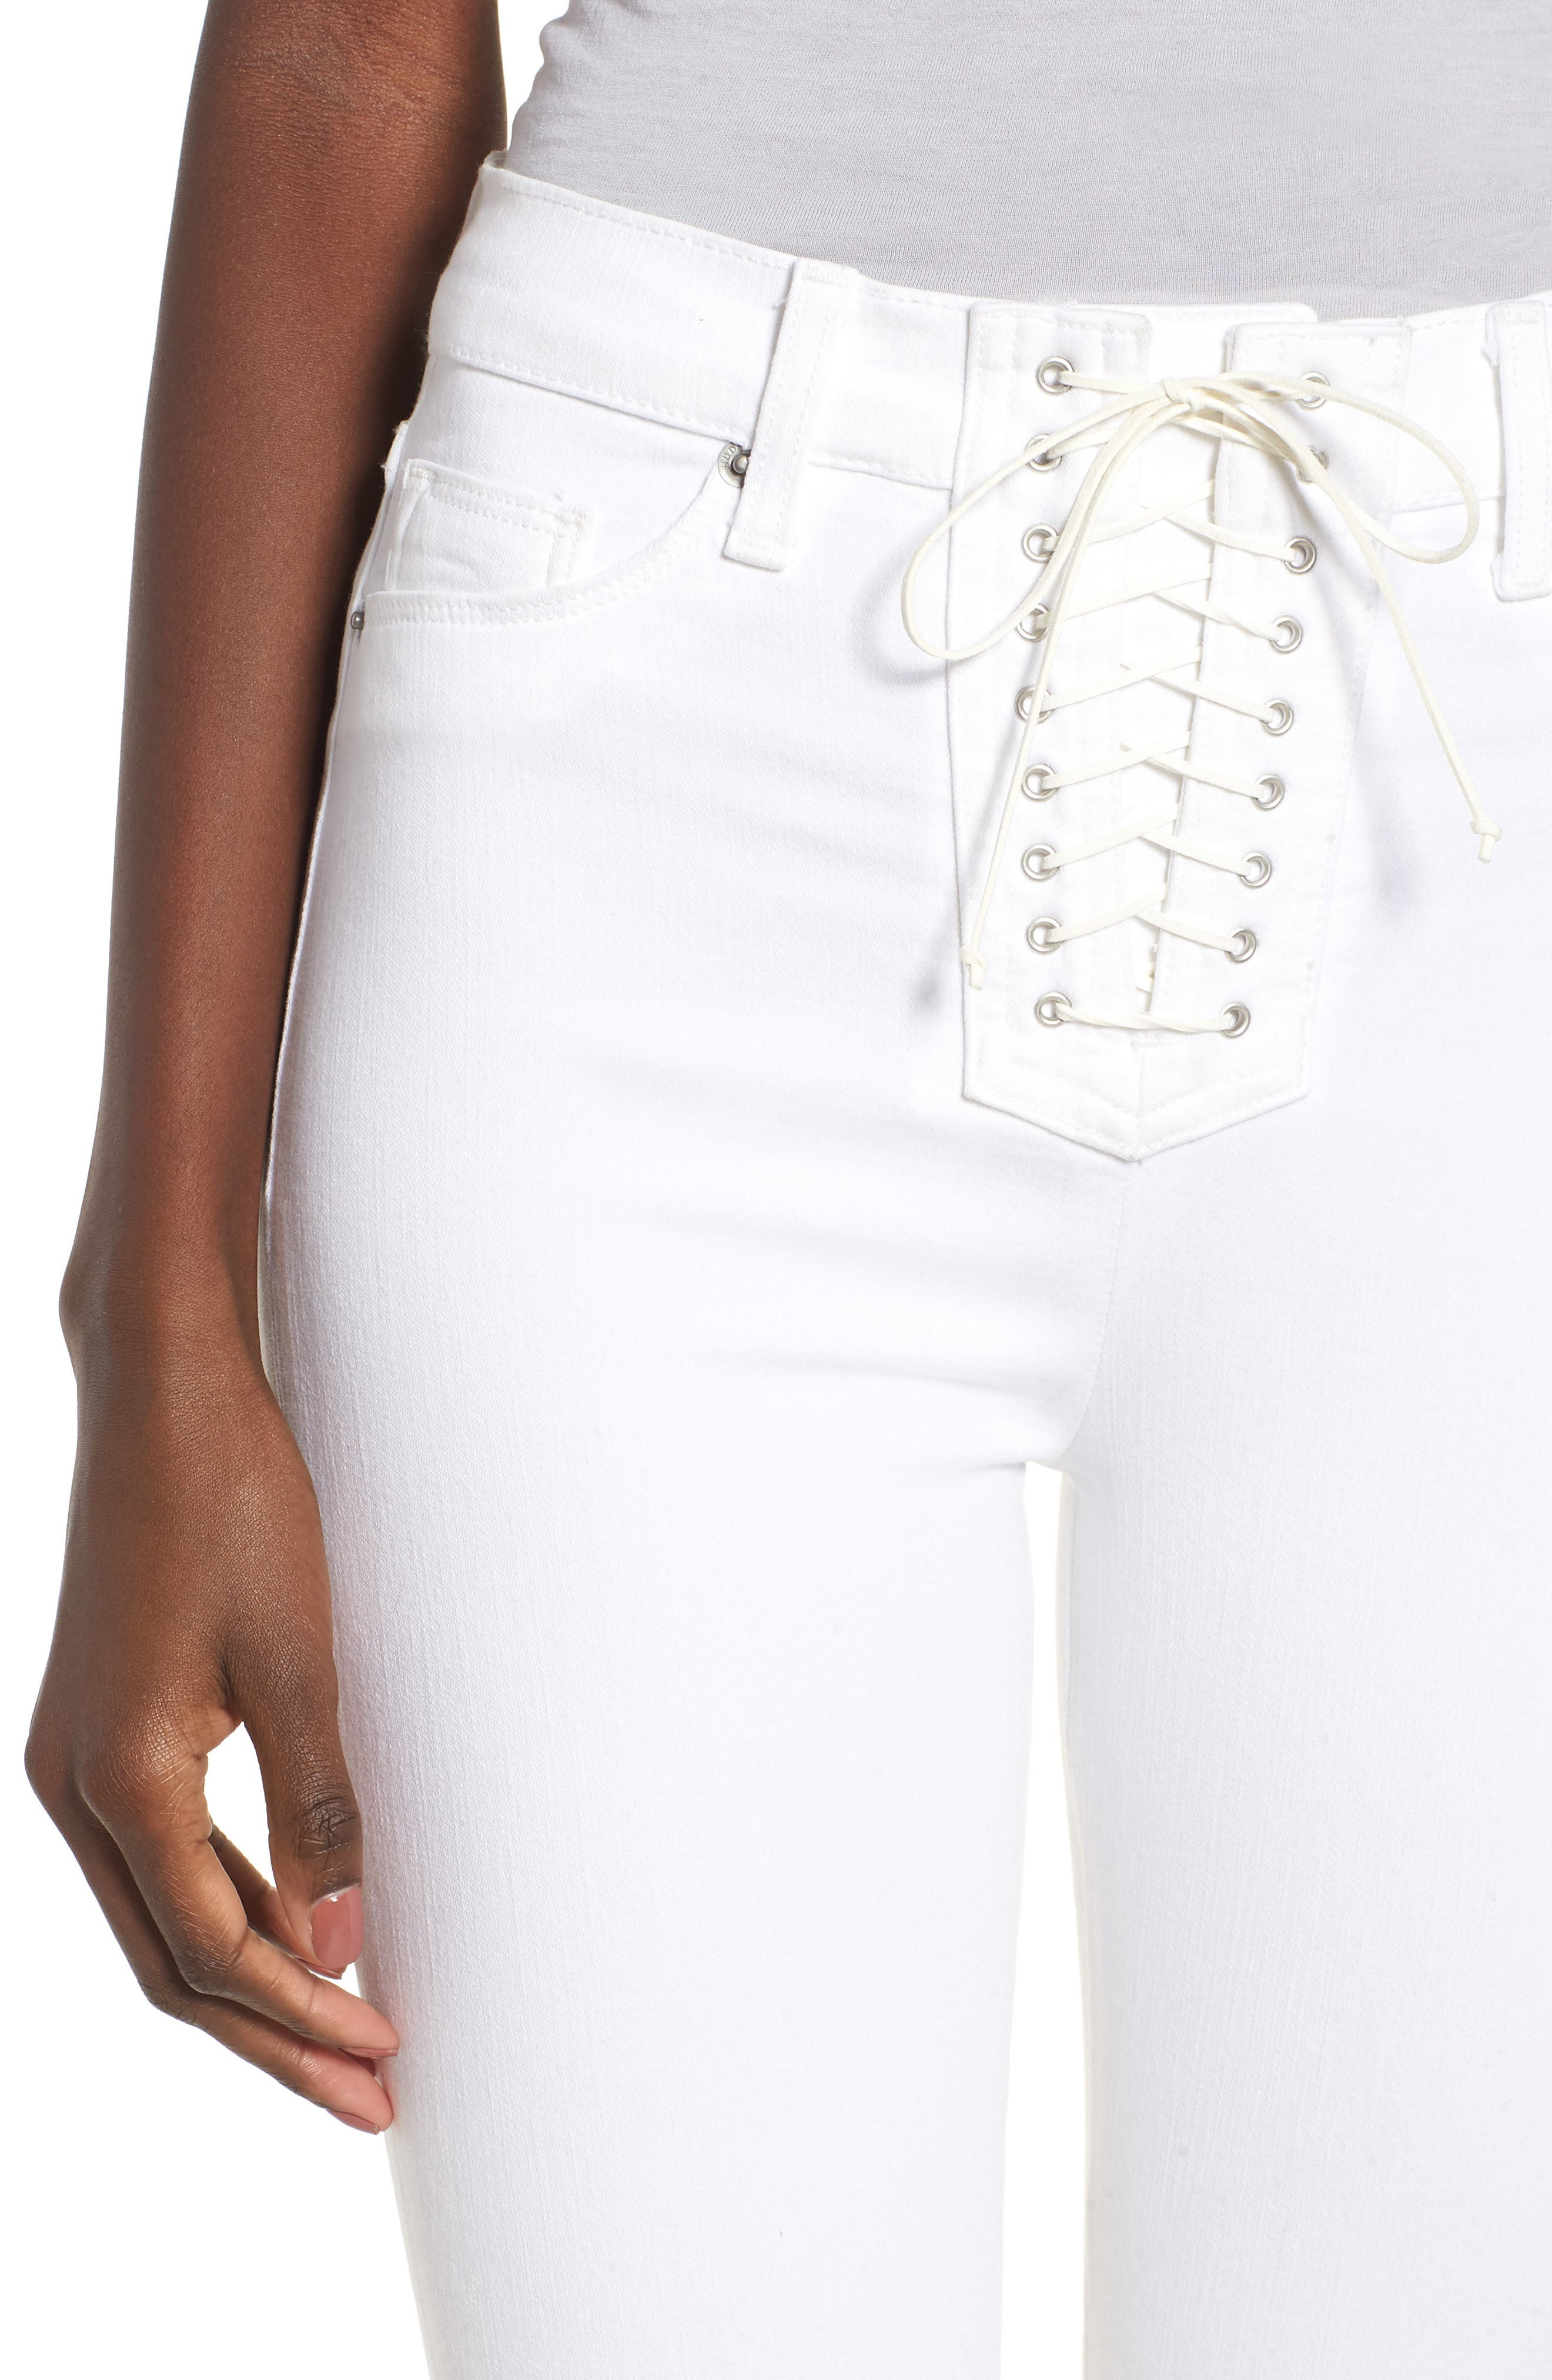 Bullocks Lace-Up High Waist Super Skinny Jeans,                             Alternate thumbnail 4, color,                             Optical White